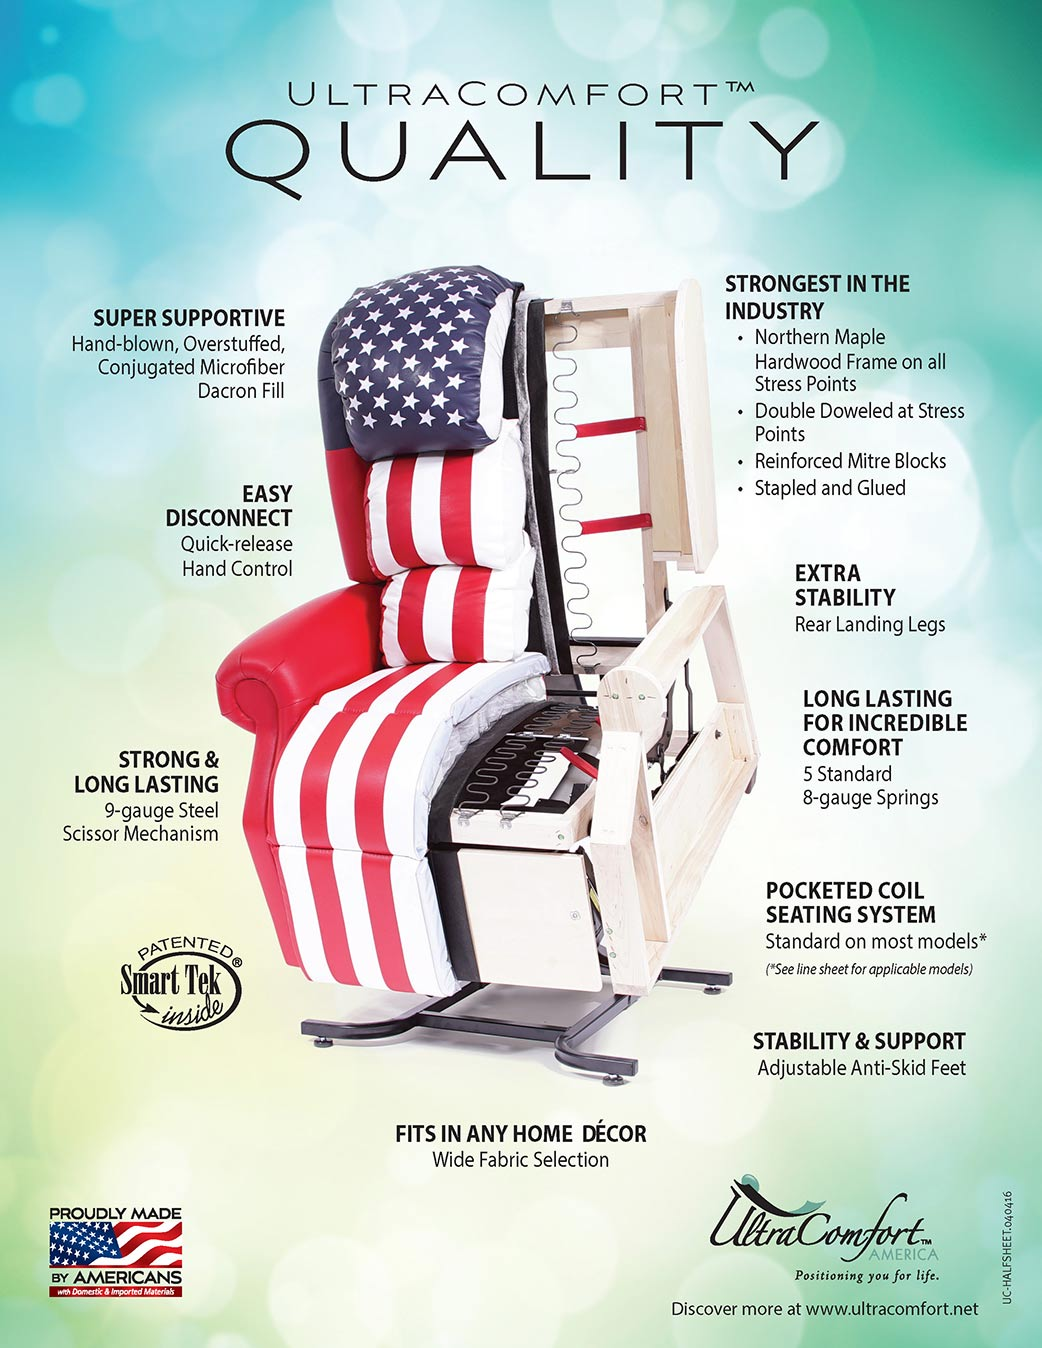 When choosing your next lift chair, choose UltraComfort™ Quality from Neve's Floors To Go in Antigo